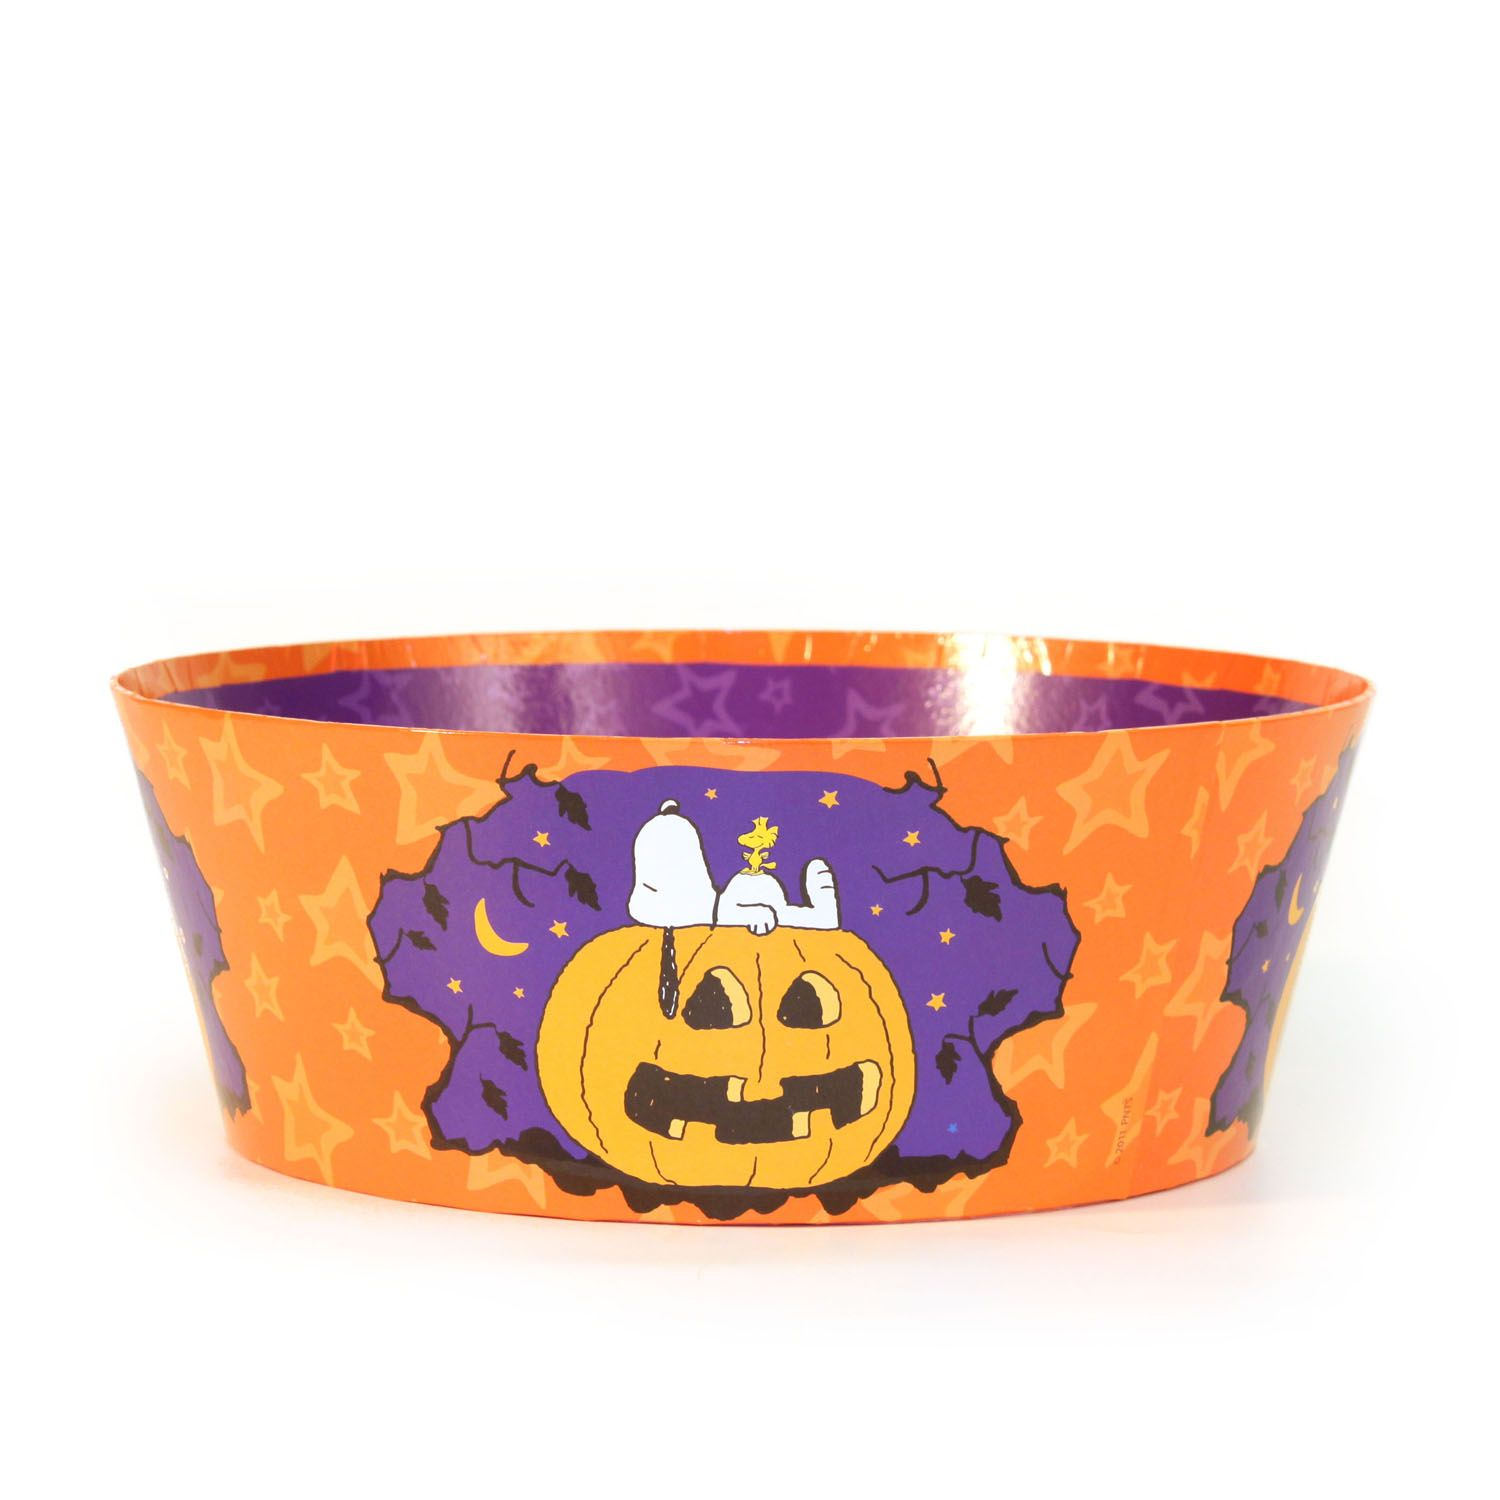 Peanuts By Shulz 12in Round Paperboard Bowl - Snoopy PartNumber: 009W003413563003P KsnValue: 009W003413563003